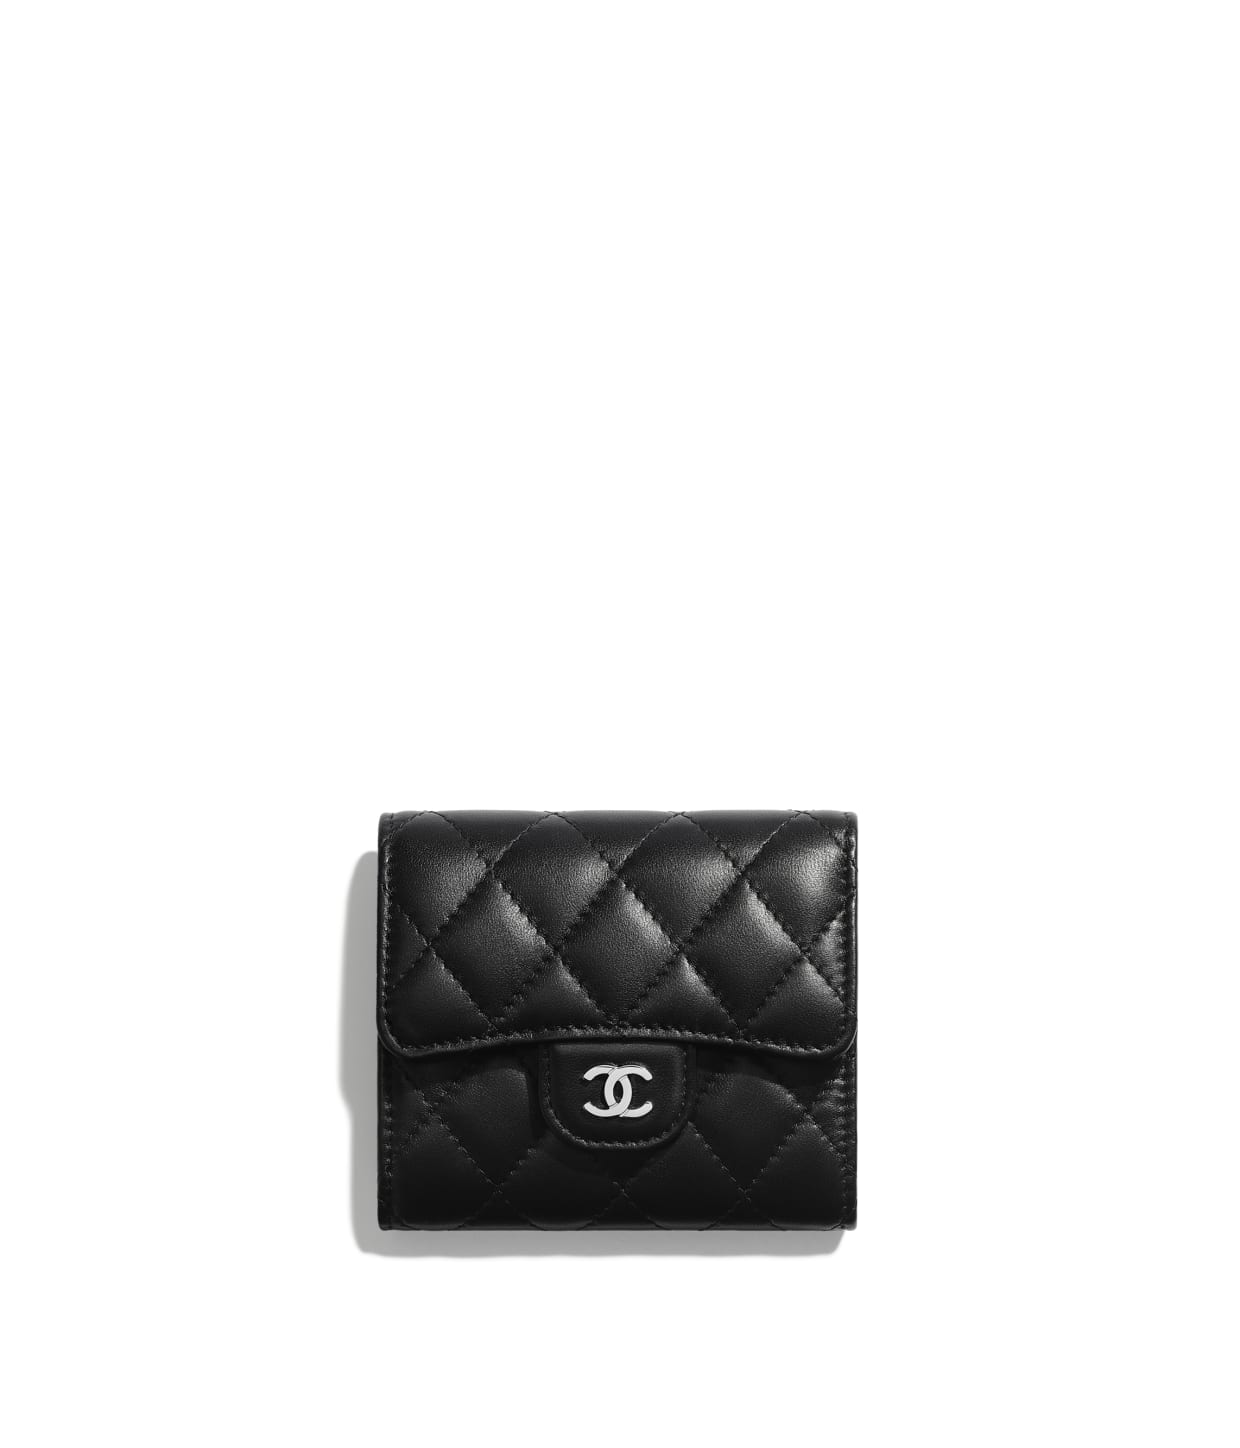 1178dd96267a Chanel Small Wallet 2019 | Stanford Center for Opportunity Policy in ...